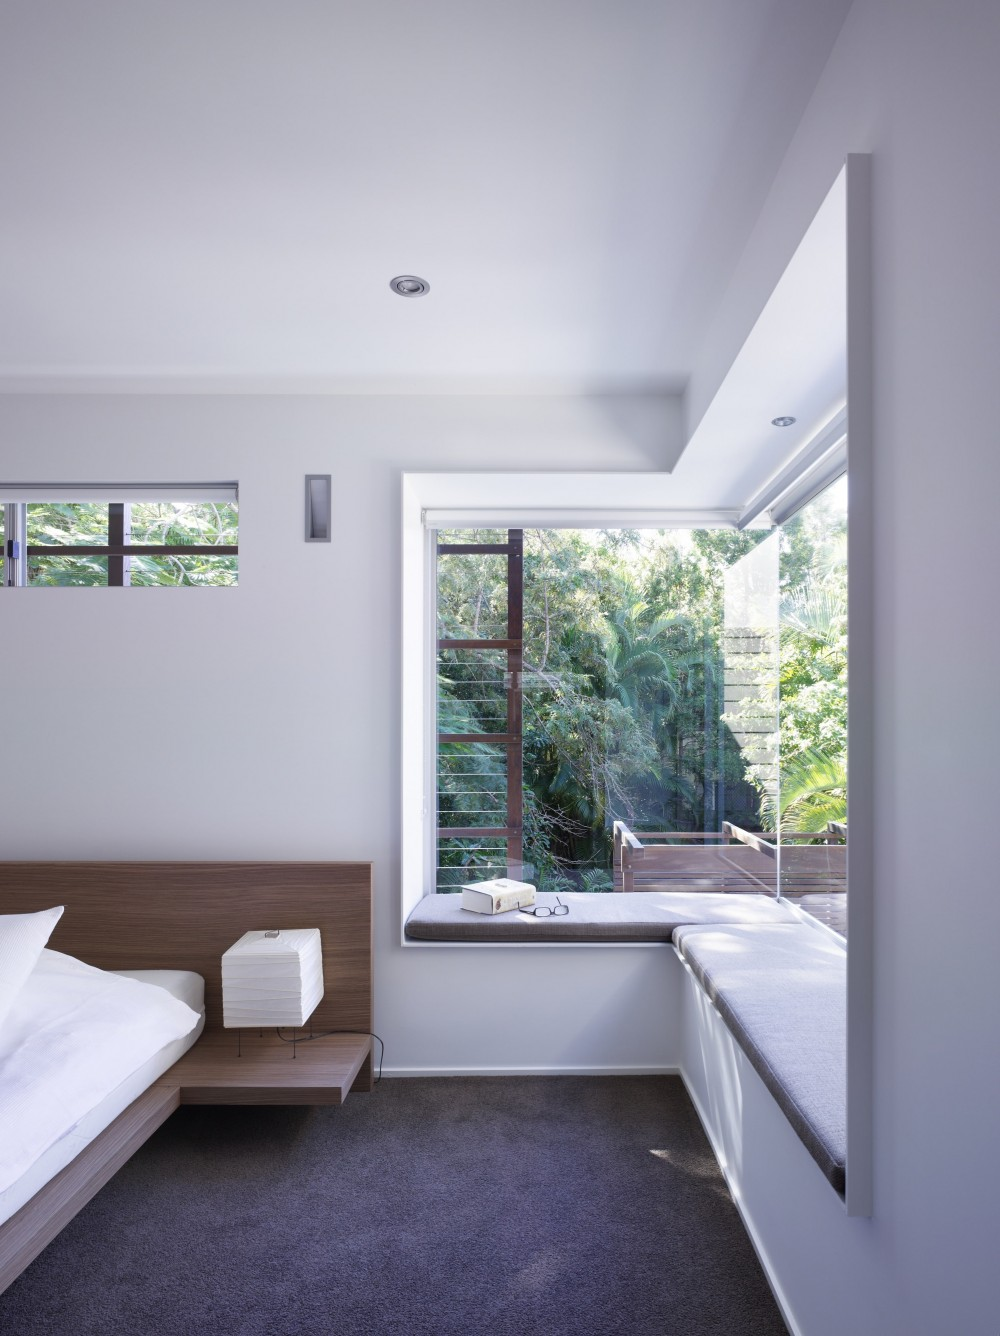 Window seat in a modern bedroom, great option to create a refuge area in a biophilic design.